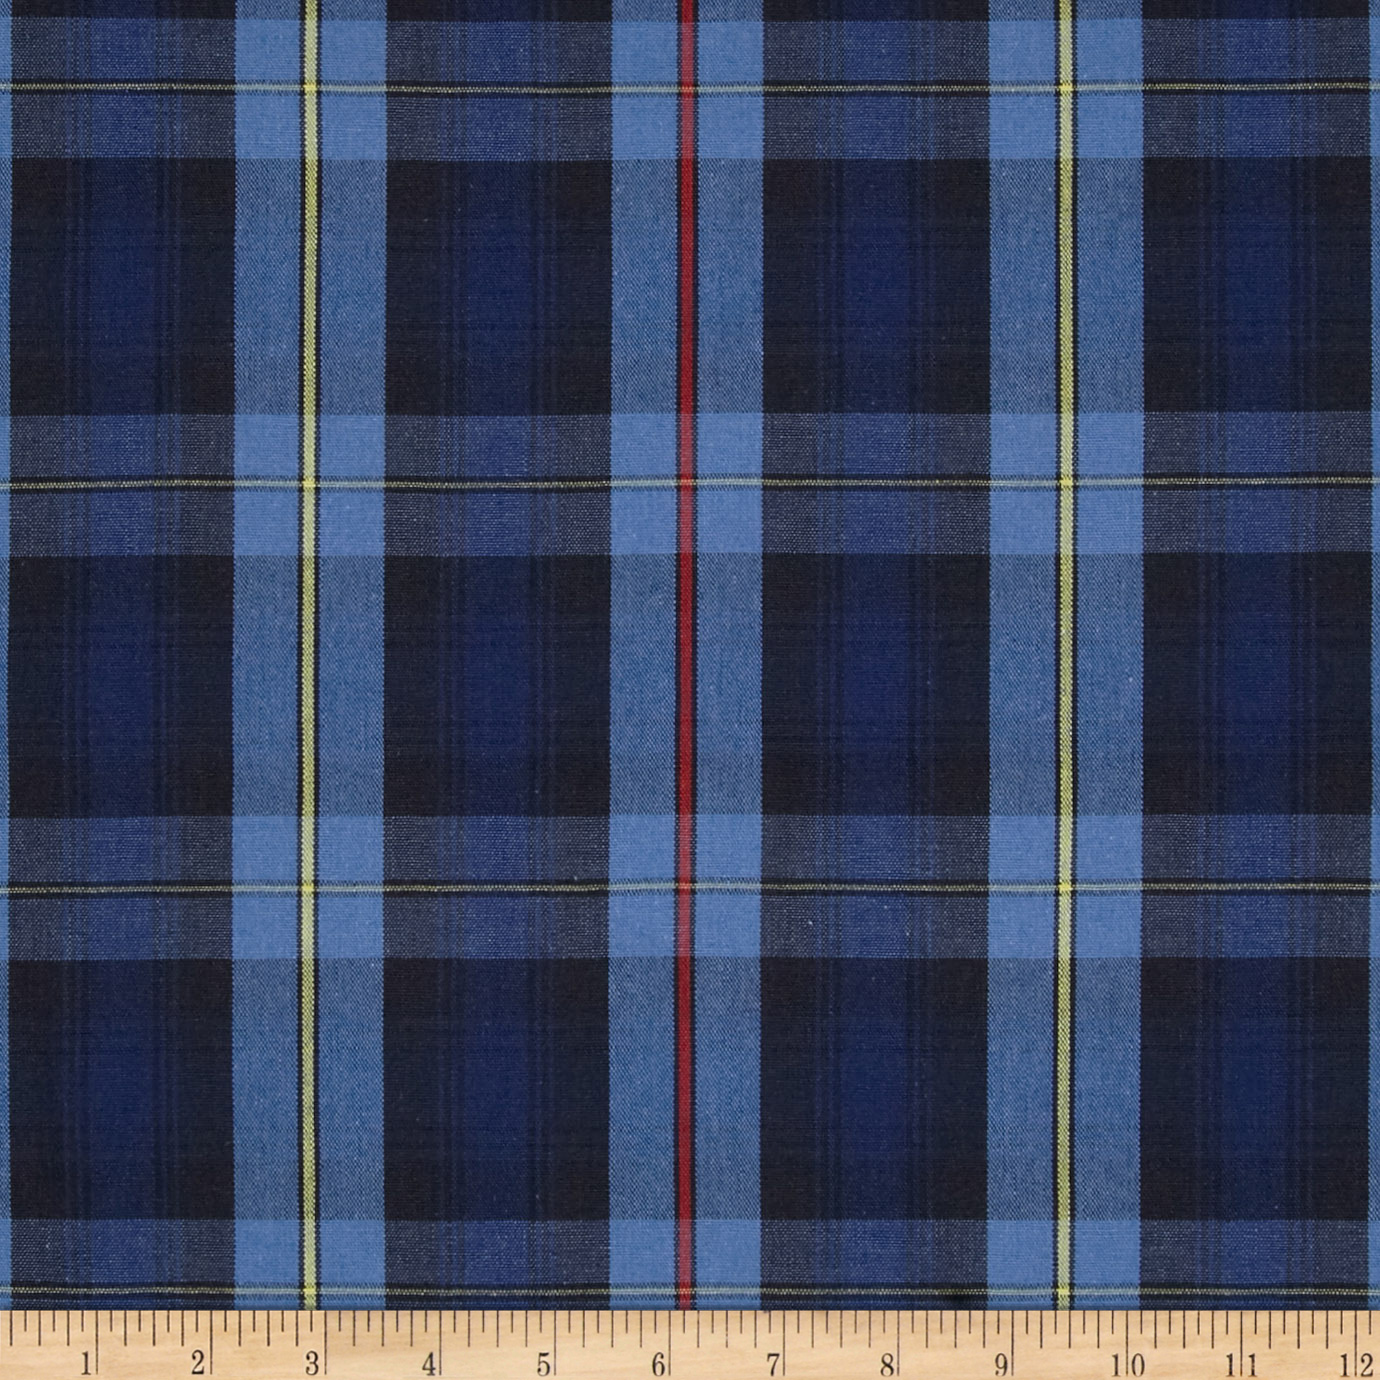 Poly/Cotton Uniform Plaid Black/Blue/Yellow Fabric by Carr in USA